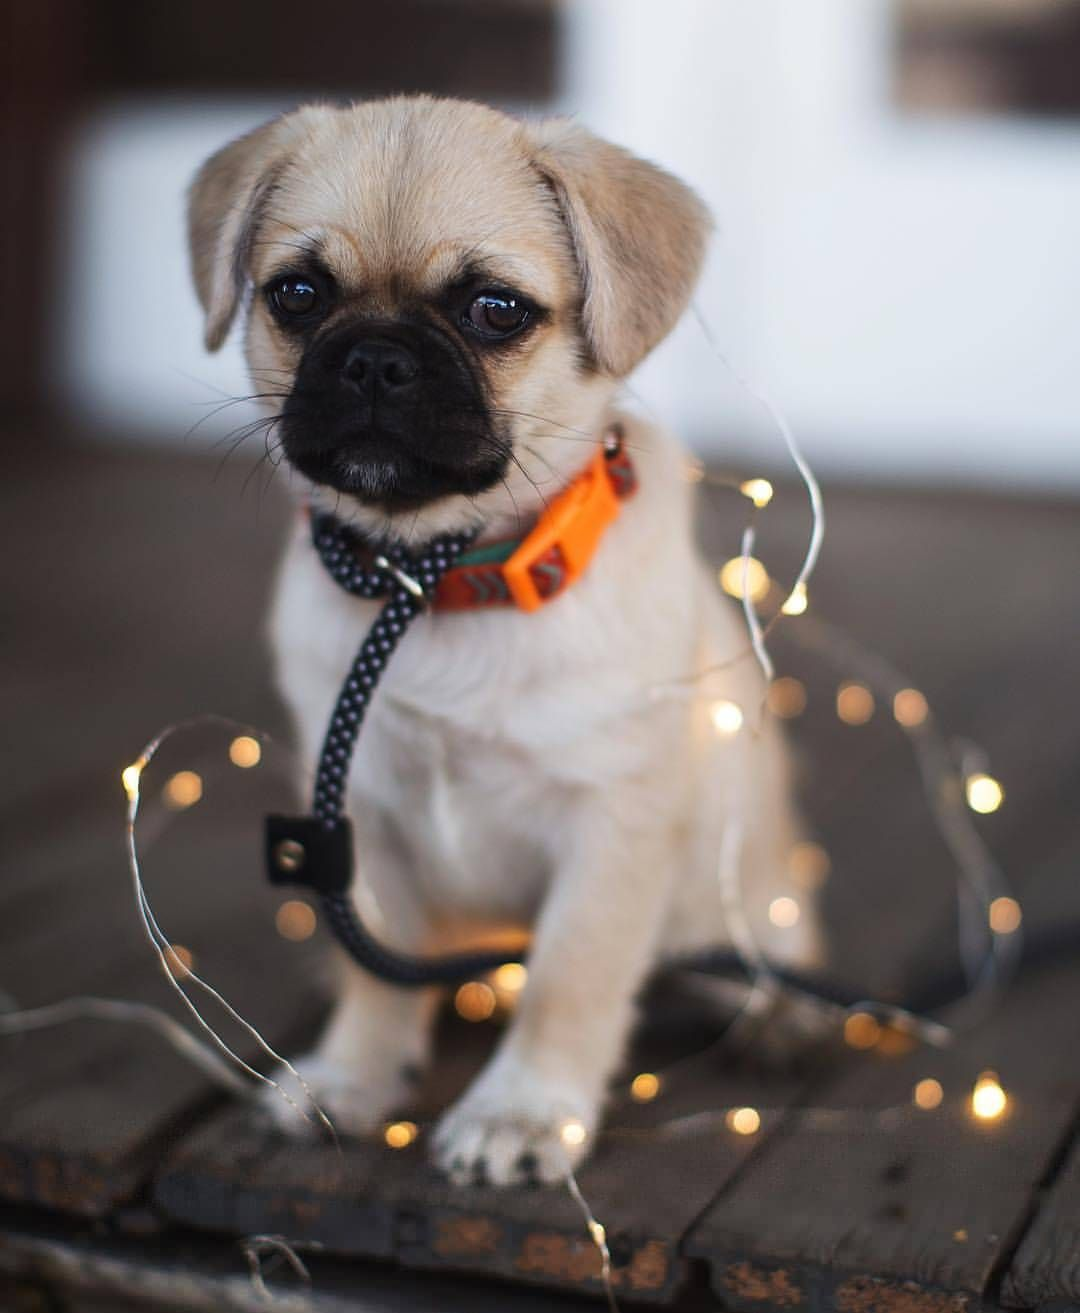 I Need This Pug In My Life Pugdaily Pugs Pug Cute Puglover